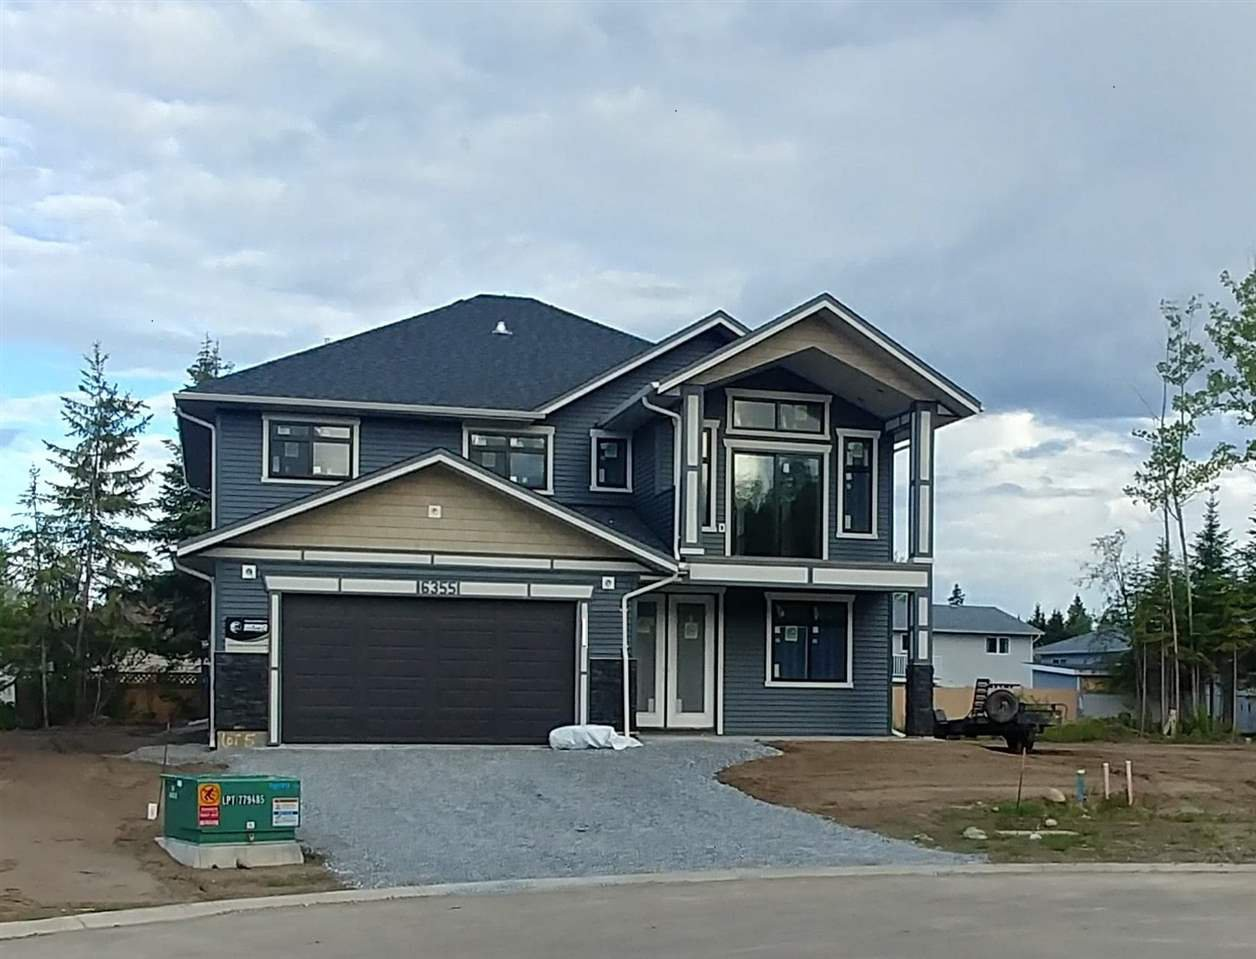 Main Photo: 6355 RITA Place in Prince George: Emerald House for sale (PG City North (Zone 73))  : MLS®# R2371356